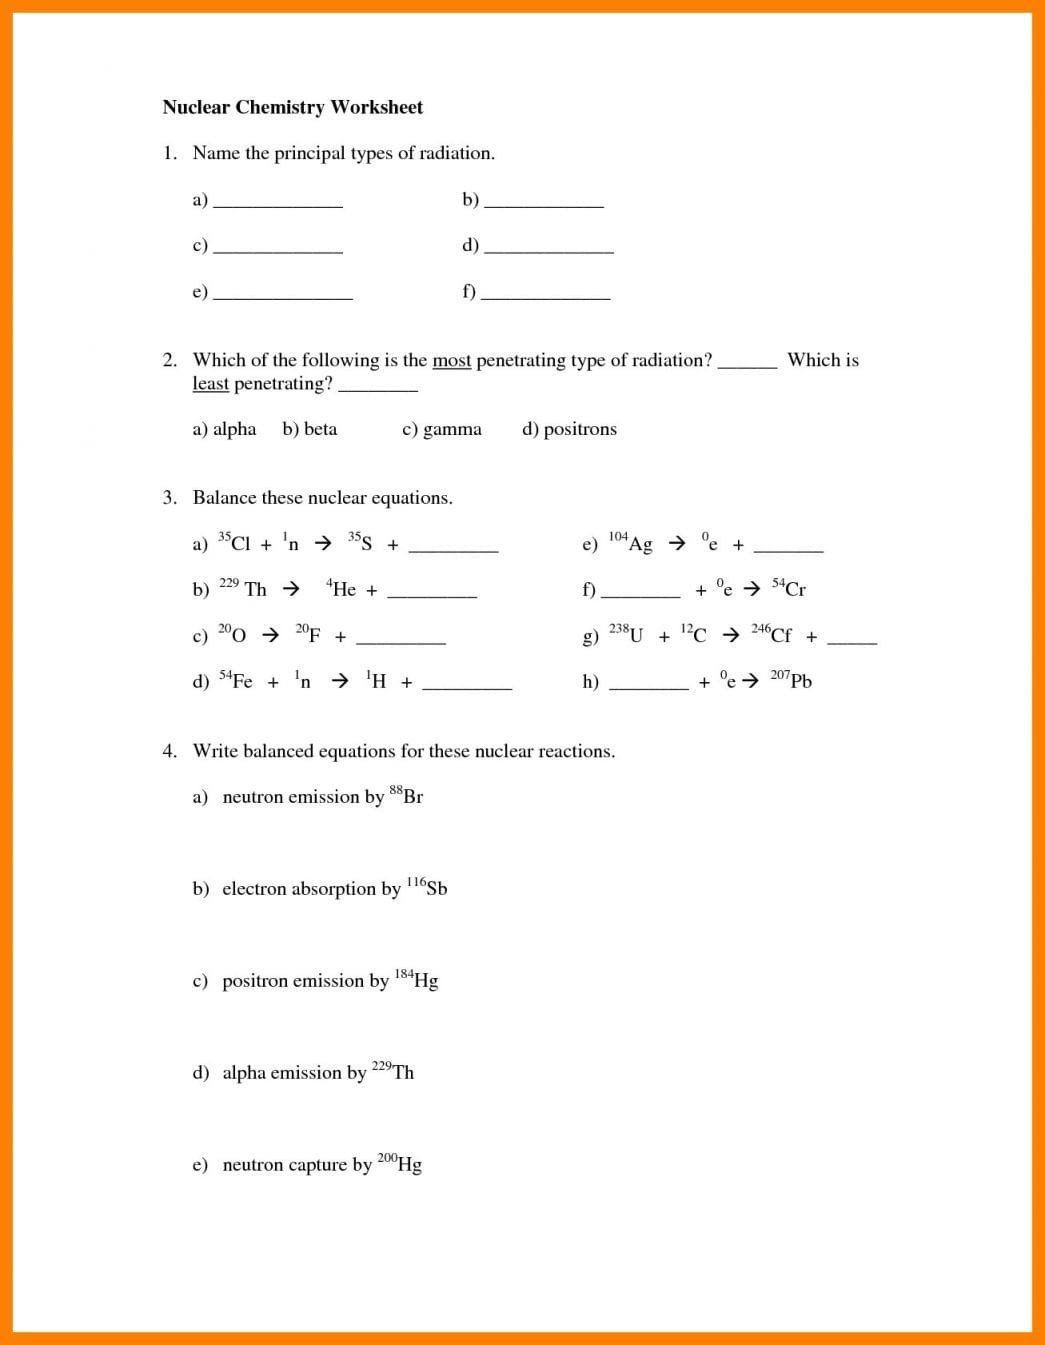 Balancing Nuclear Equations Worksheet Answers Worksheet Radioactive Decay In 2020 Chemistry Worksheets Text Features Worksheet Relationship Worksheets